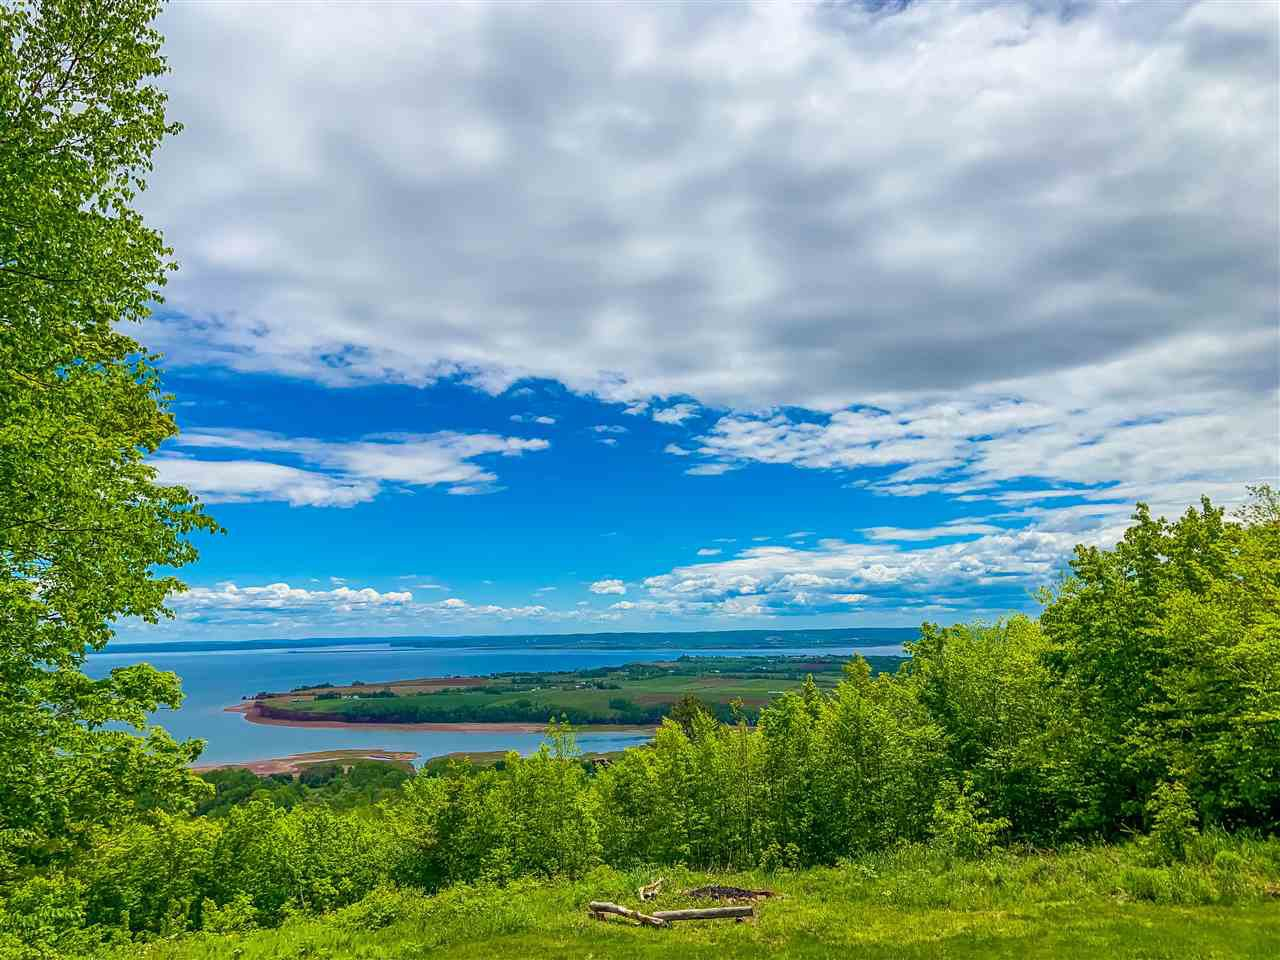 Main Photo: 3706 HIGHWAY 358 in South Scots Bay: 404-Kings County Residential for sale (Annapolis Valley)  : MLS®# 202009960